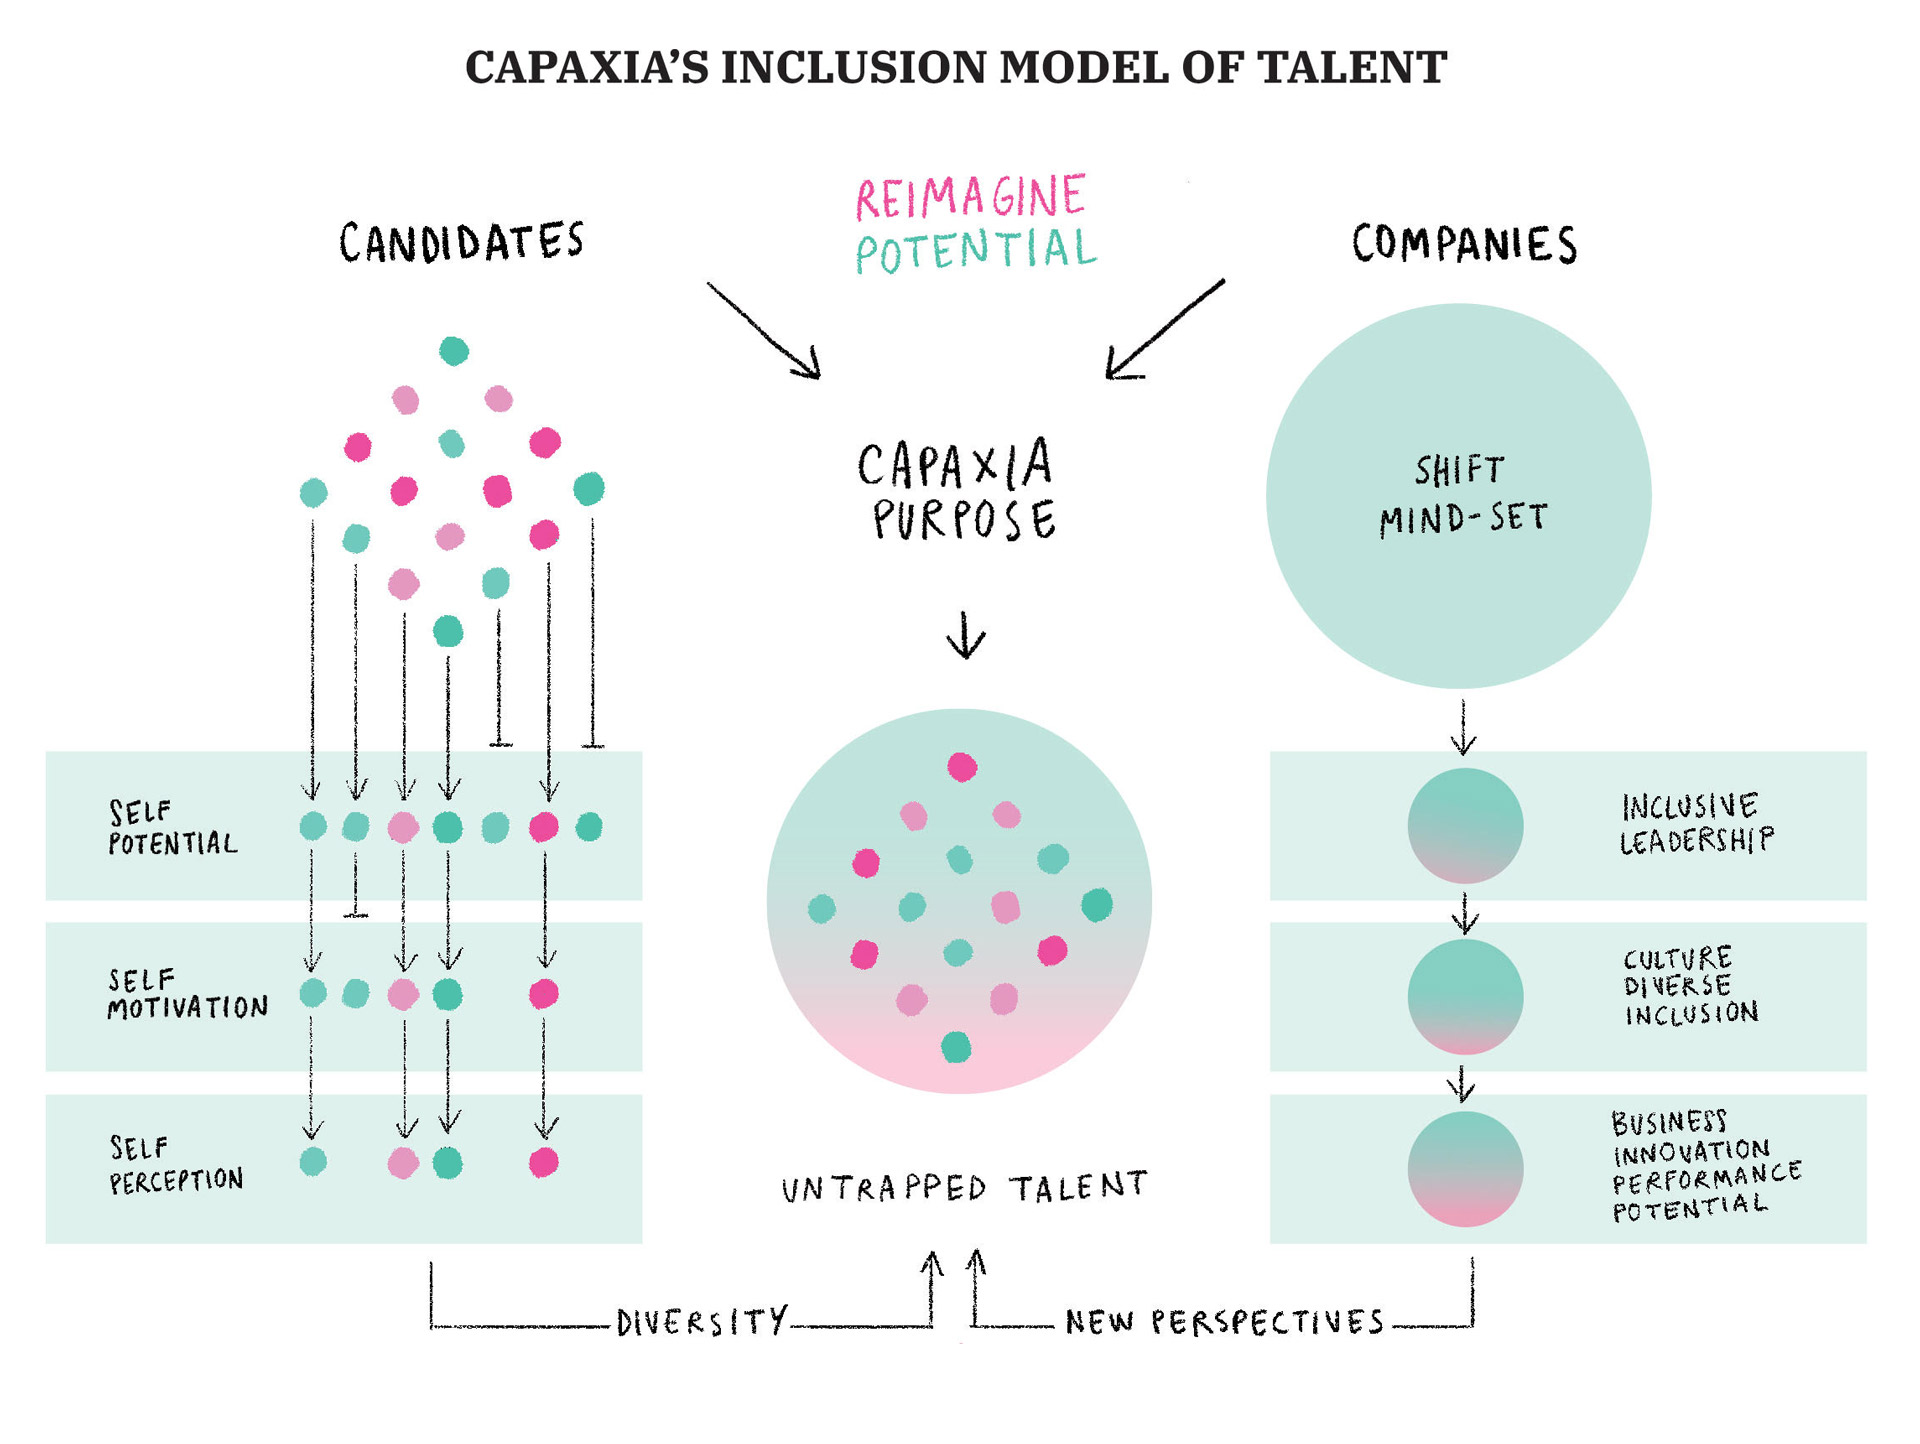 Inclusion model of talent